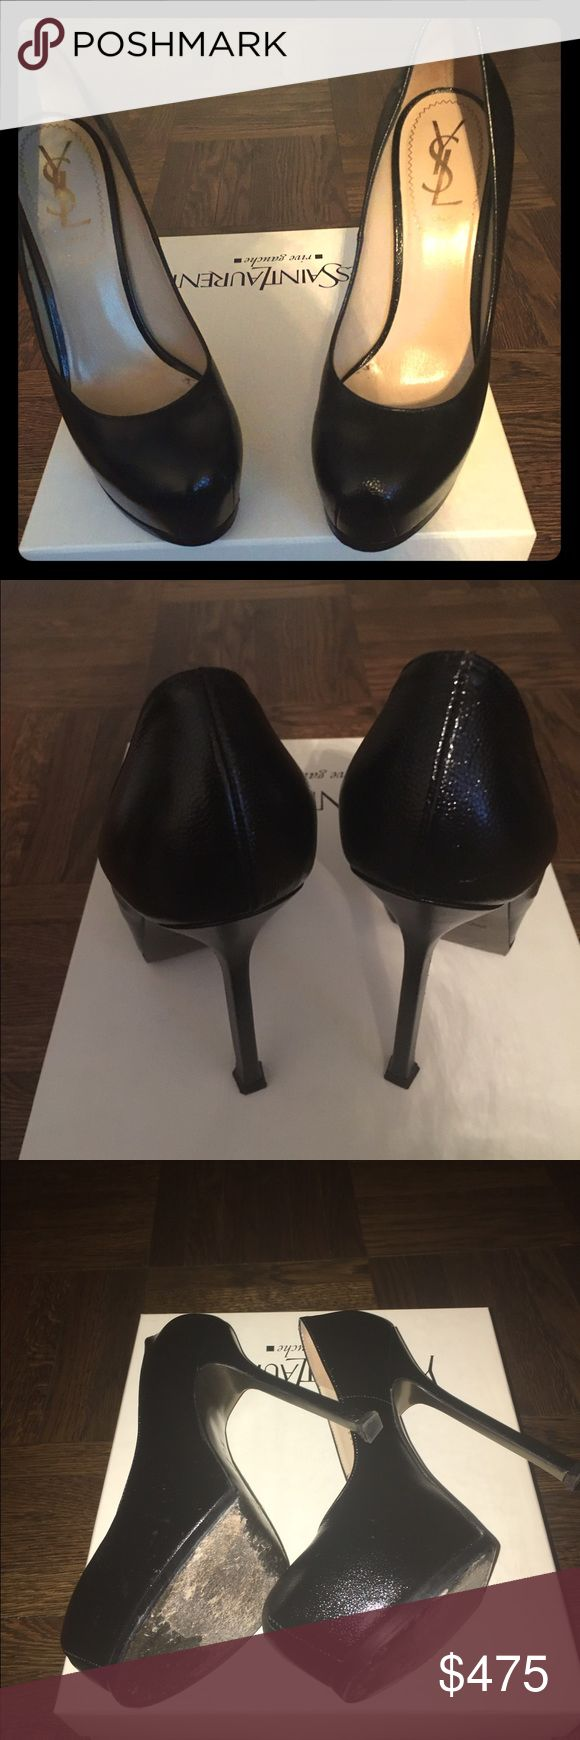 YSL black Tribtoo pumps, 💯 authentic, sz US7/EU37 ICONIC AND DISCONTINUED. Excellent condition! With box and extra set of heel replacement caps. You can wear them in the boardroom or the bedroom 👠👠 Yves Saint Laurent Shoes Heels